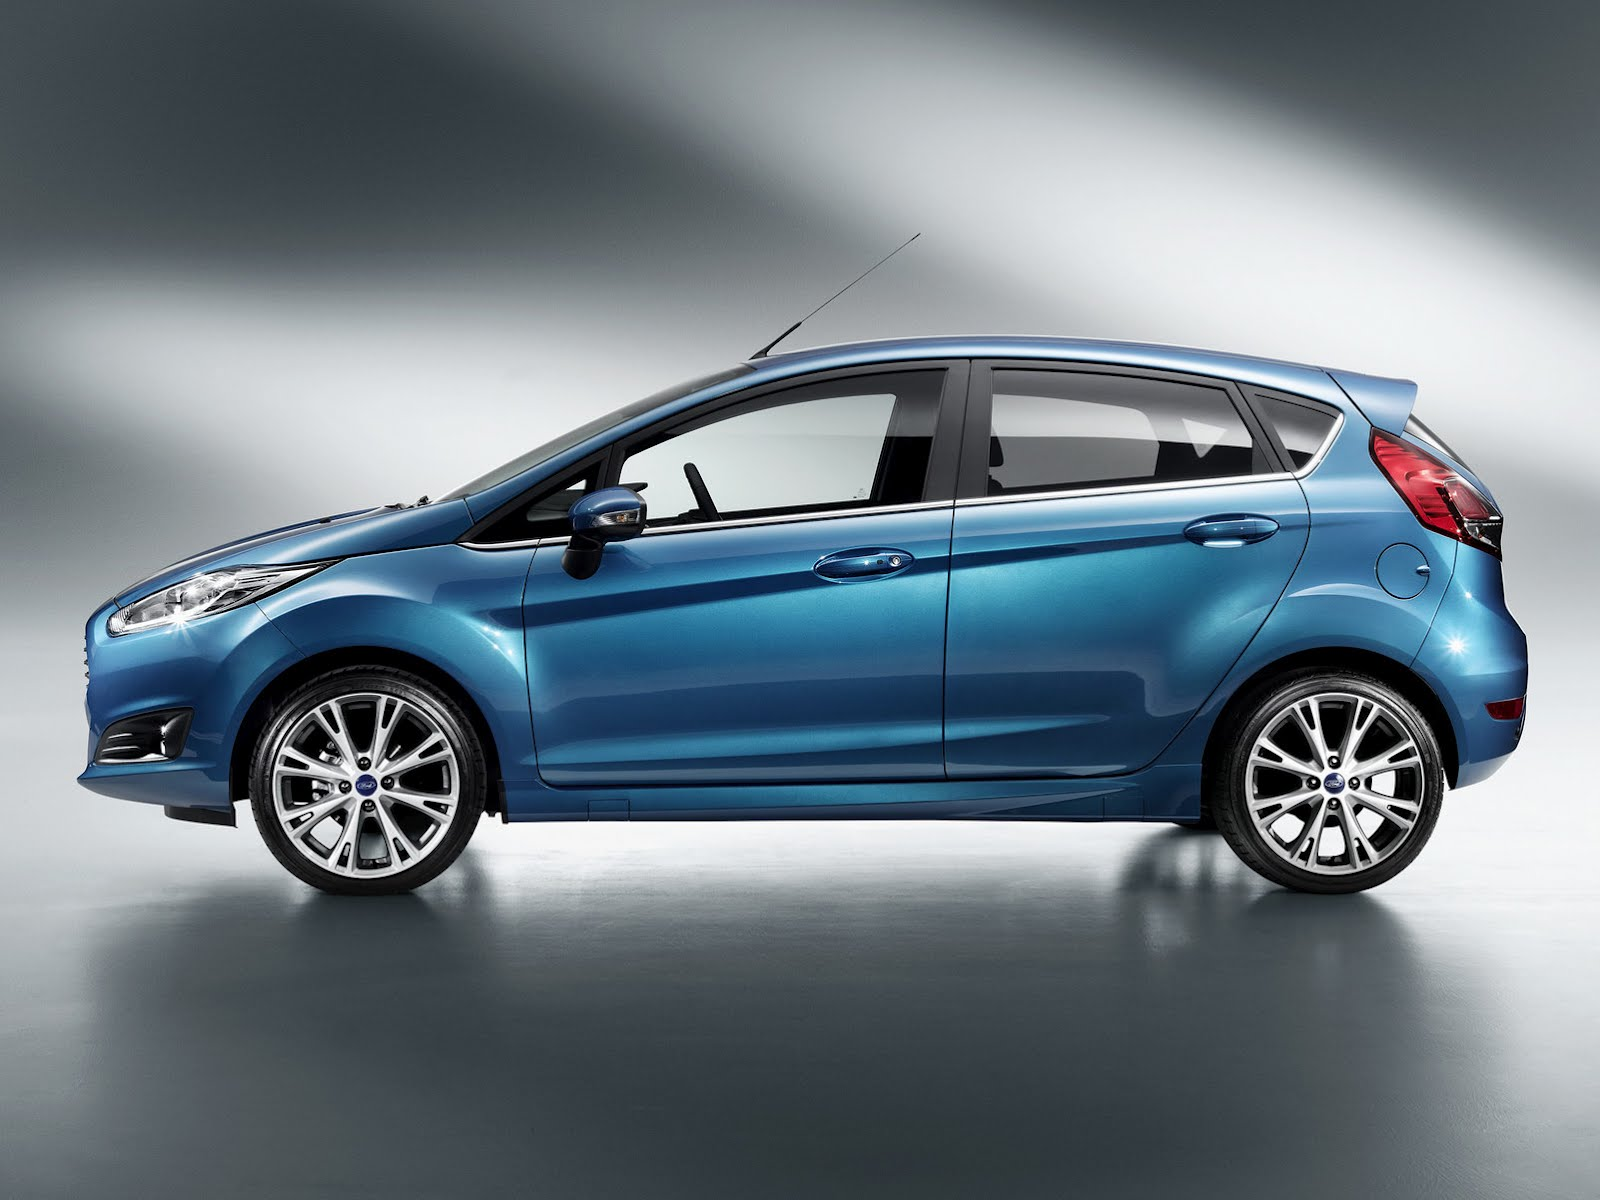 2014 ford fiesta facelift to get 1 0 liter ecoboost turbo. Black Bedroom Furniture Sets. Home Design Ideas